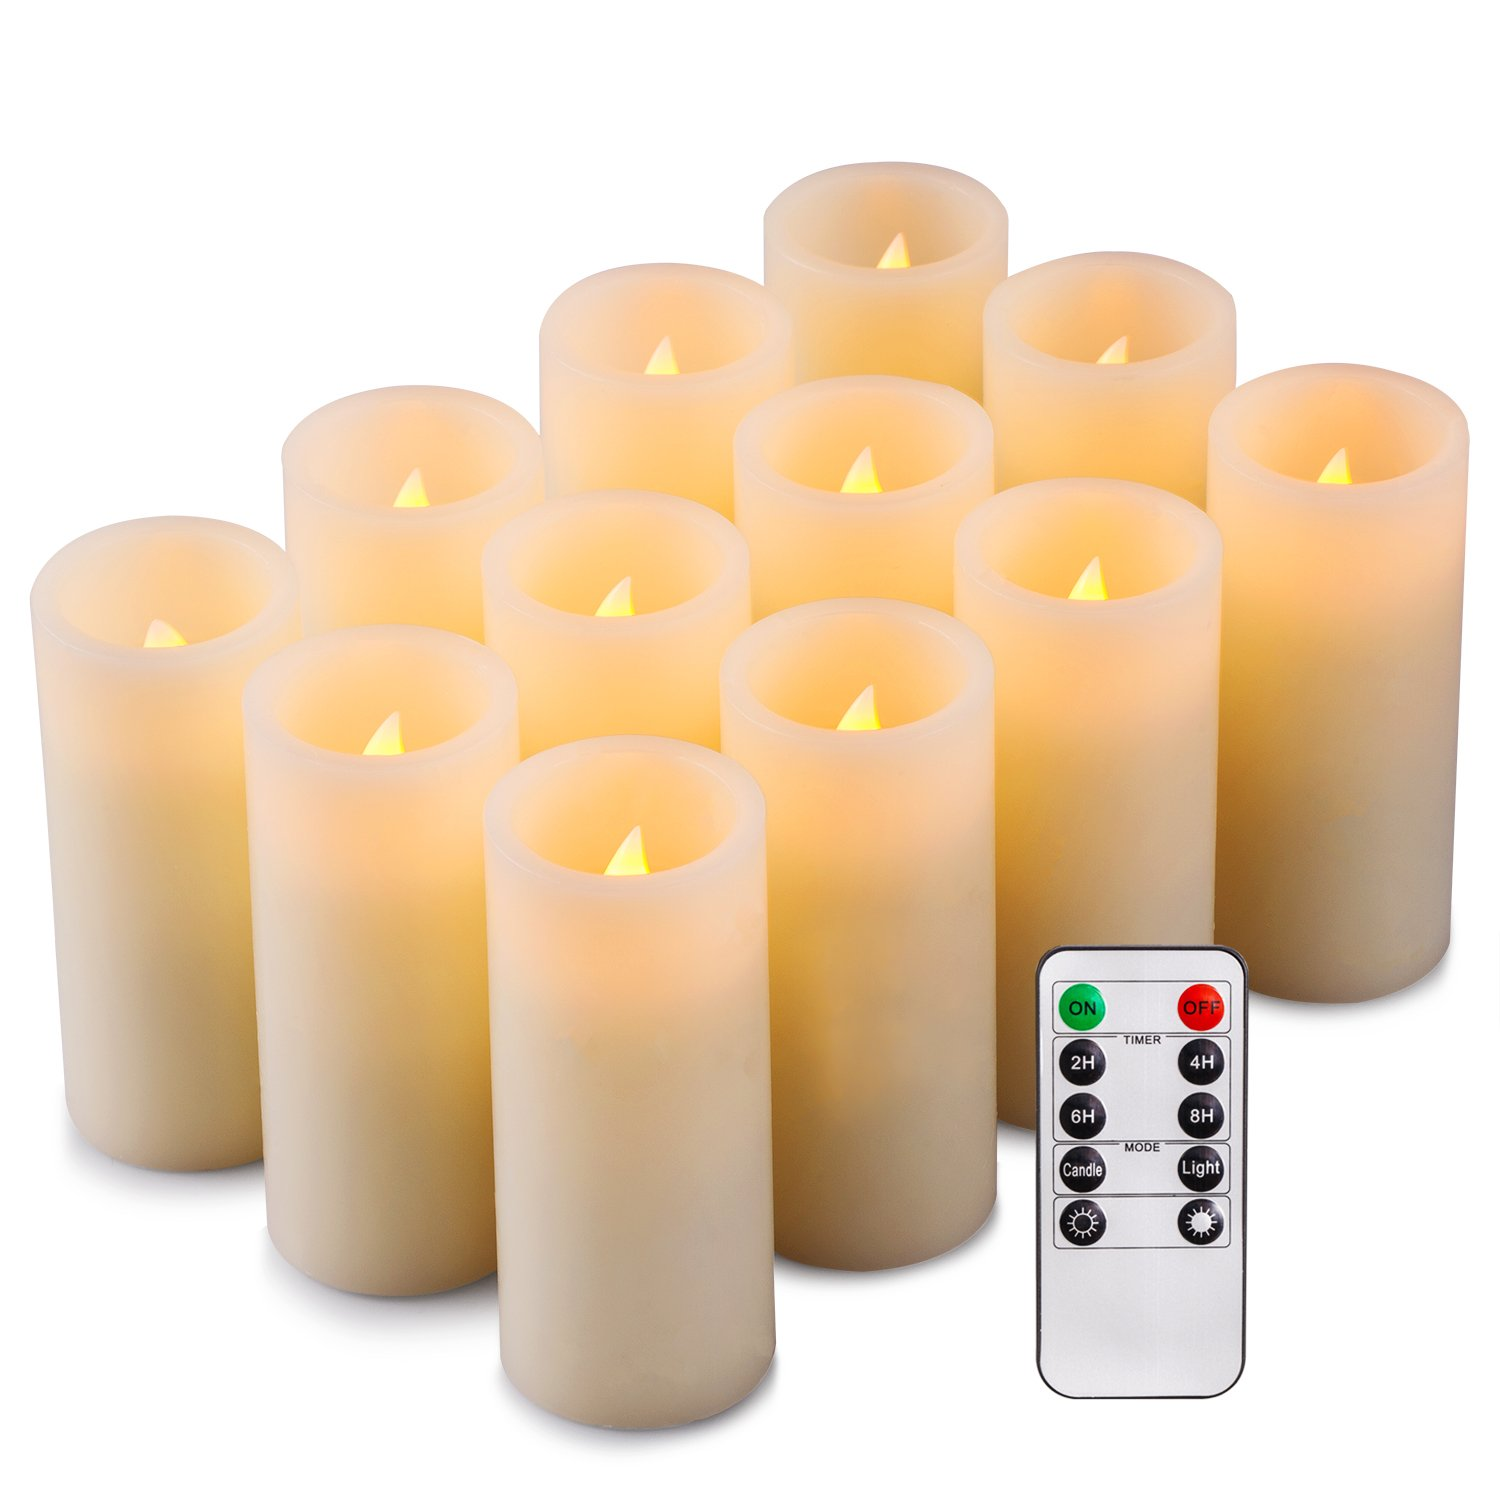 Onlyhome Flameless Candles, Flickering, Real Wax, Realistic Decor Unscented,10 Function Remote Timer - 12 Pack, Yellow Light